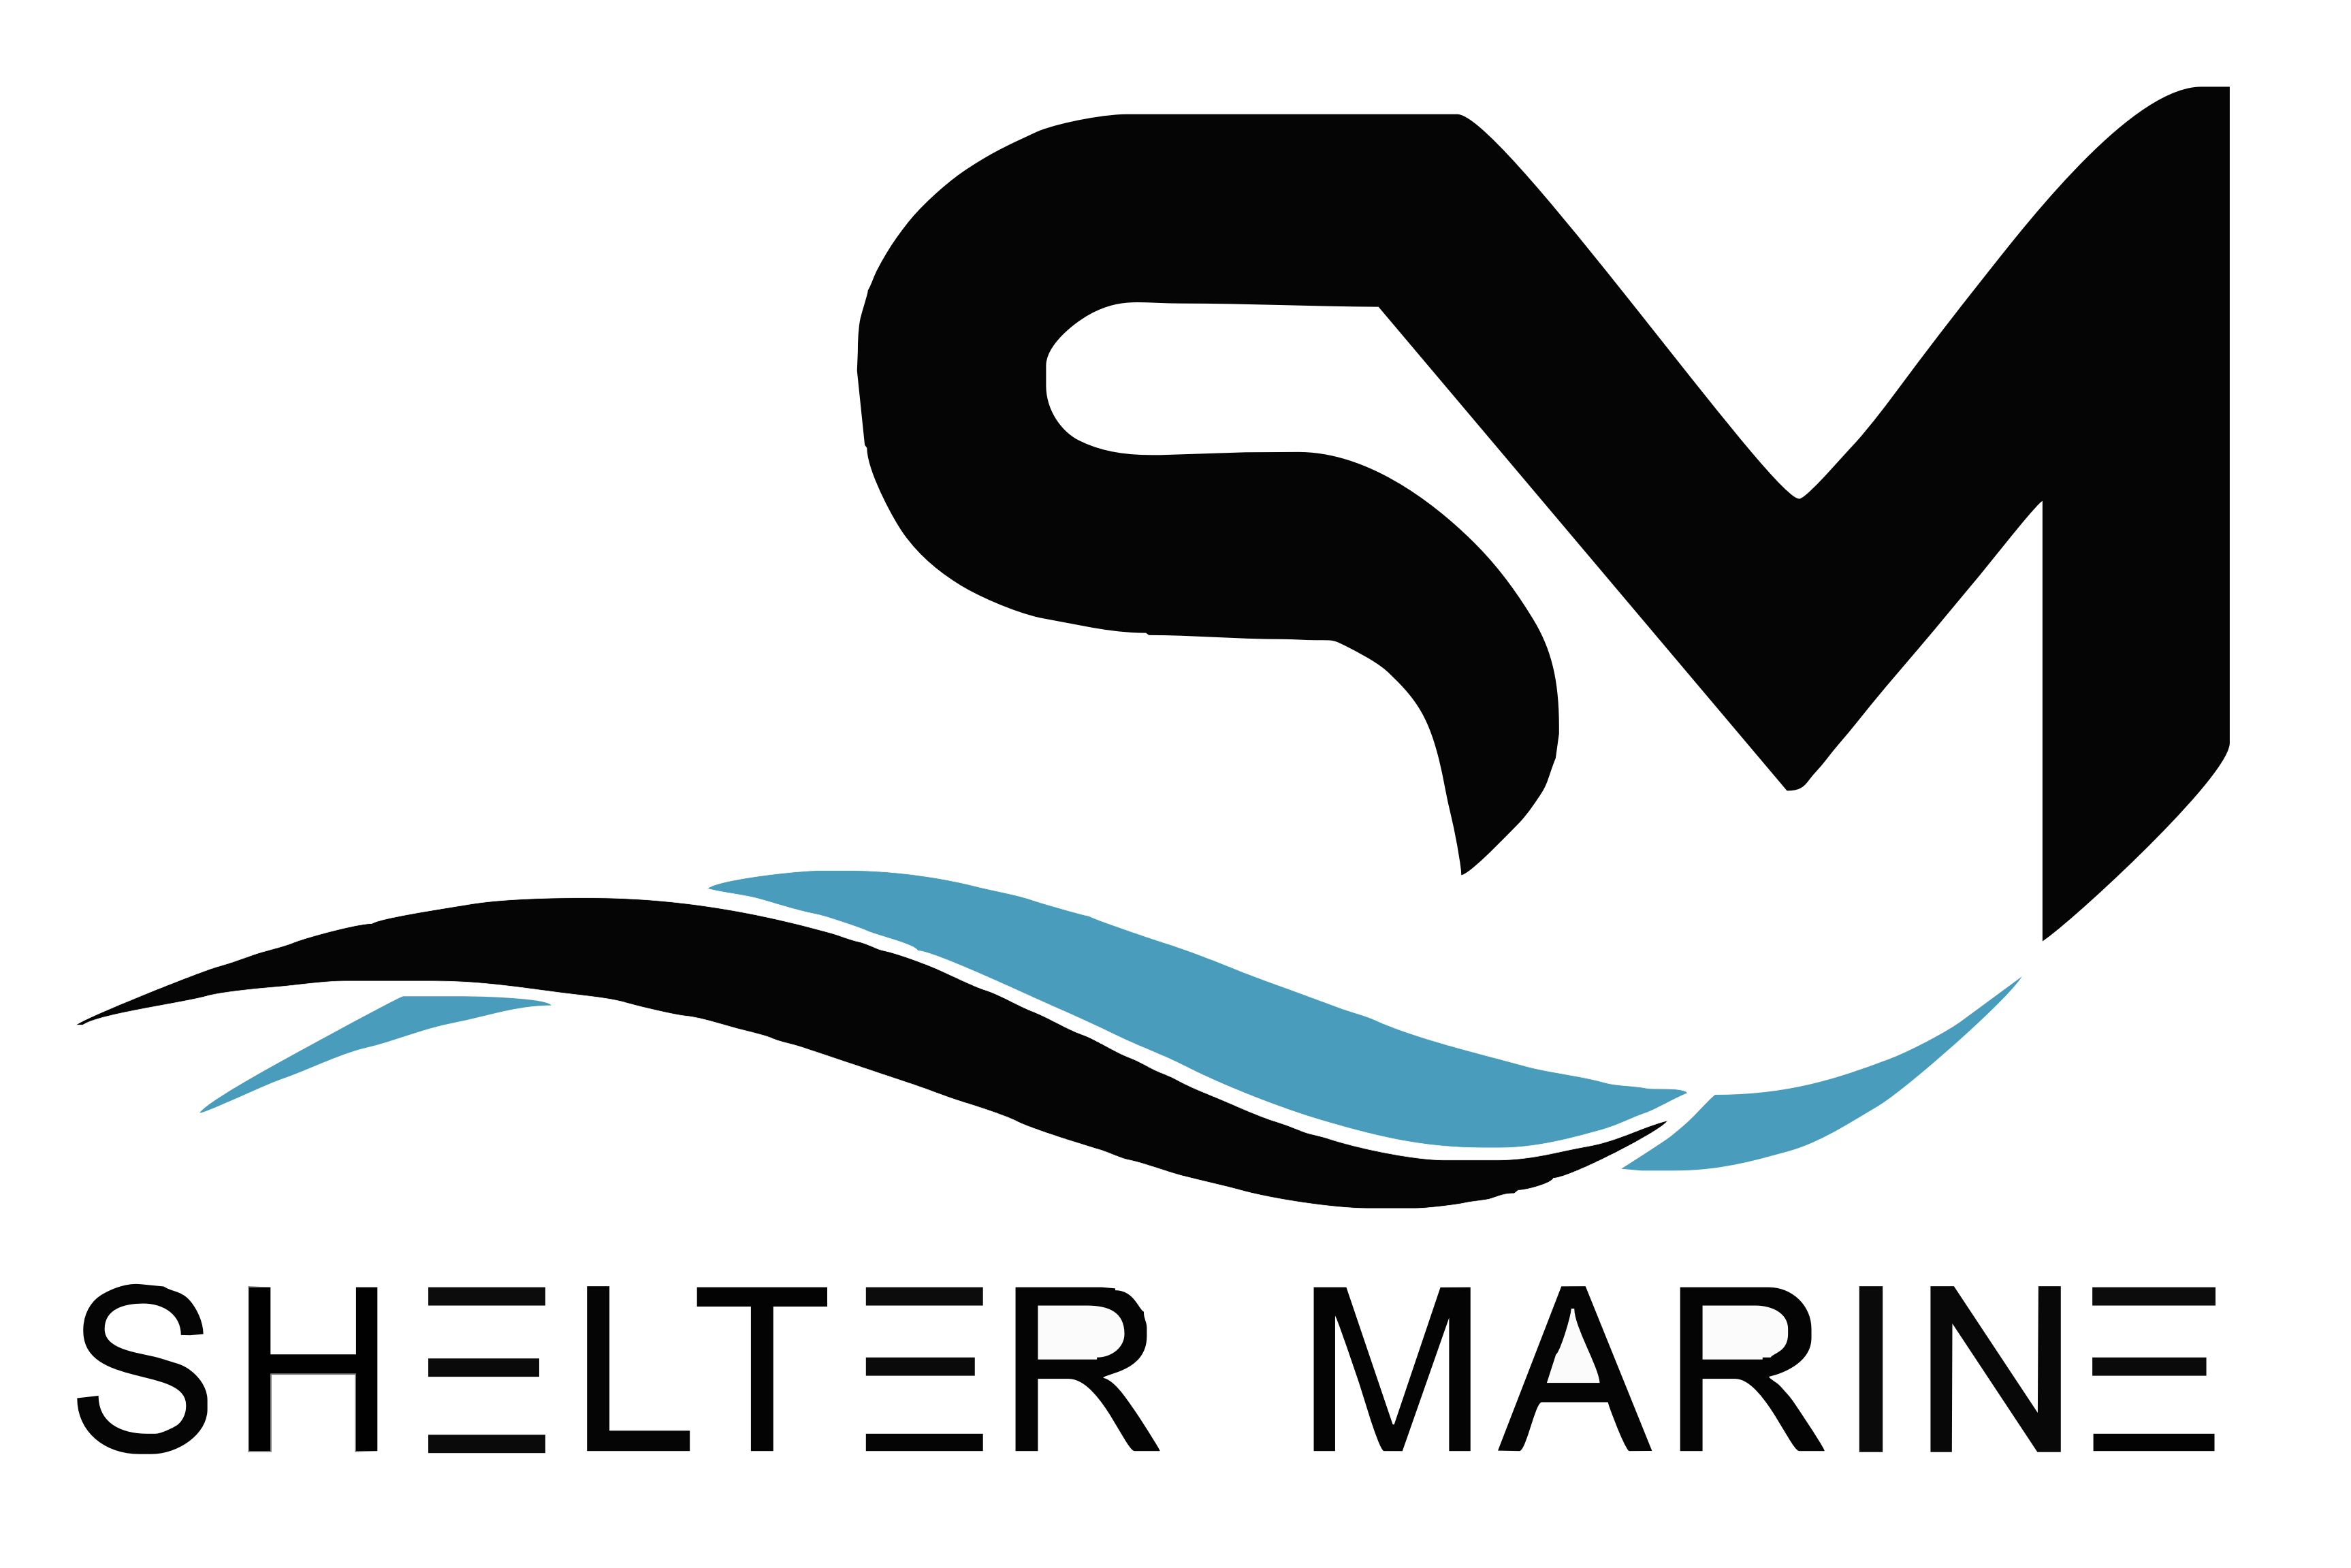 Shelter Marine new logo 4x6